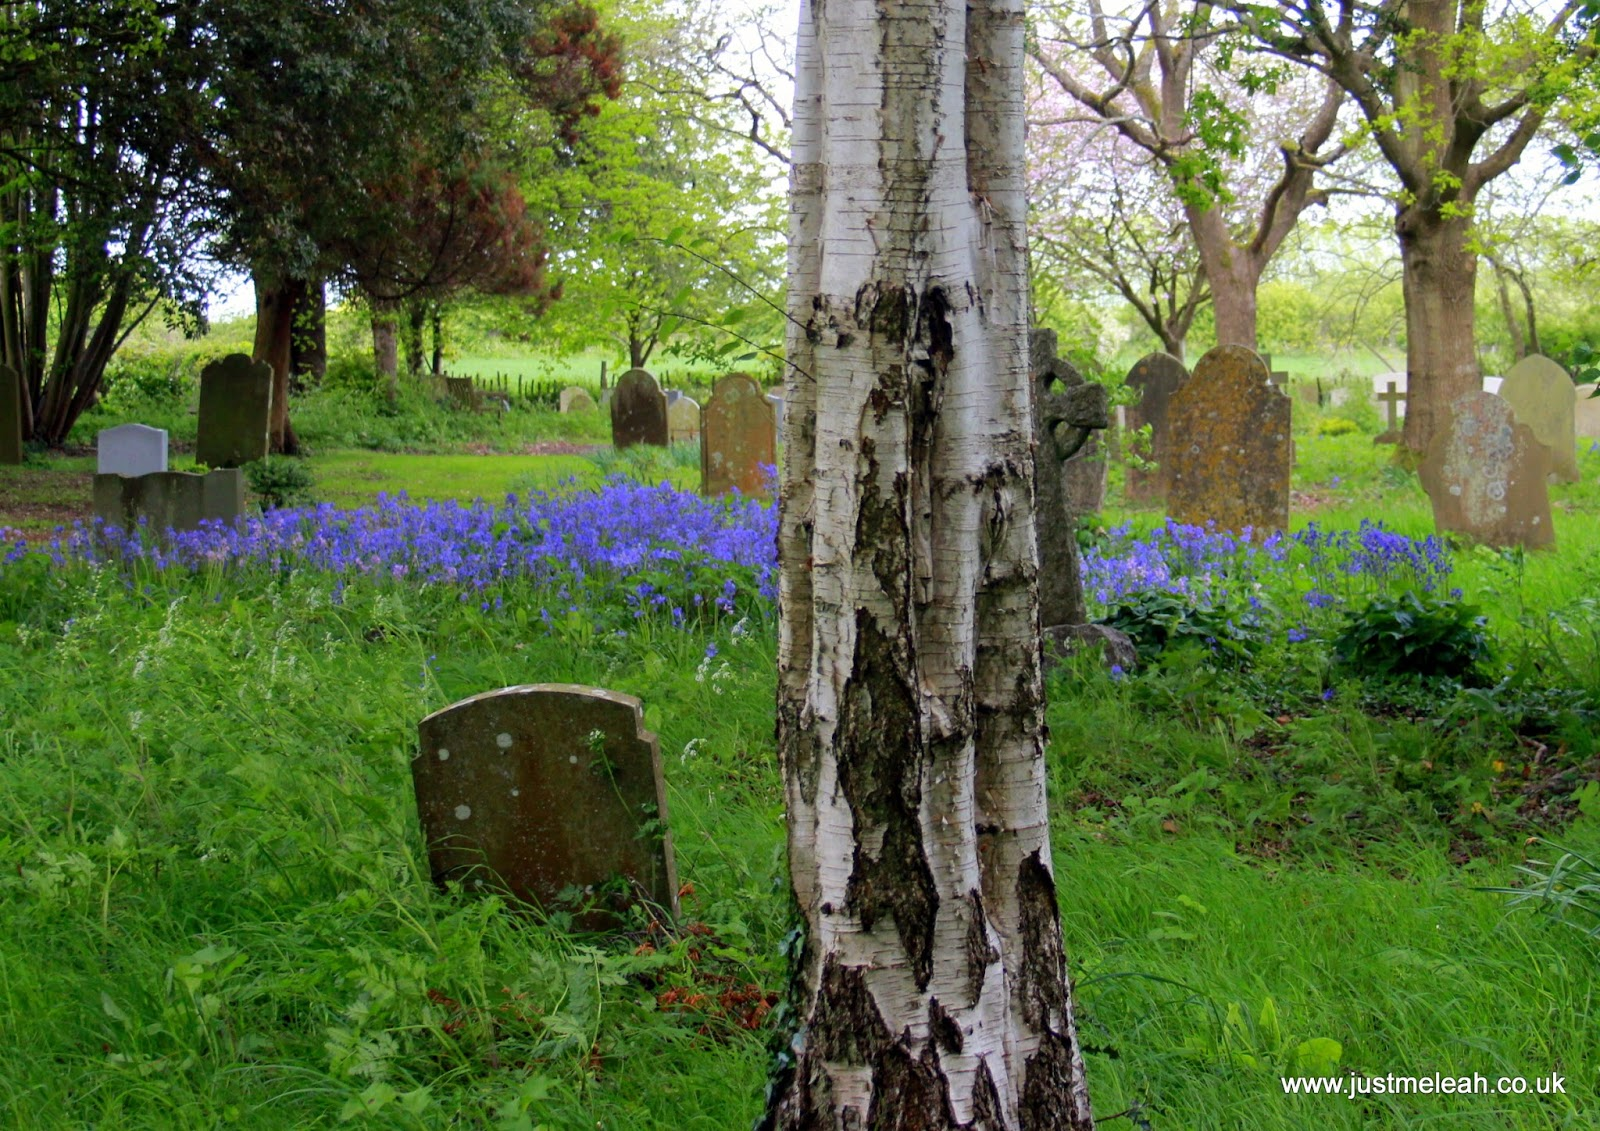 Bluebells in the cemetery